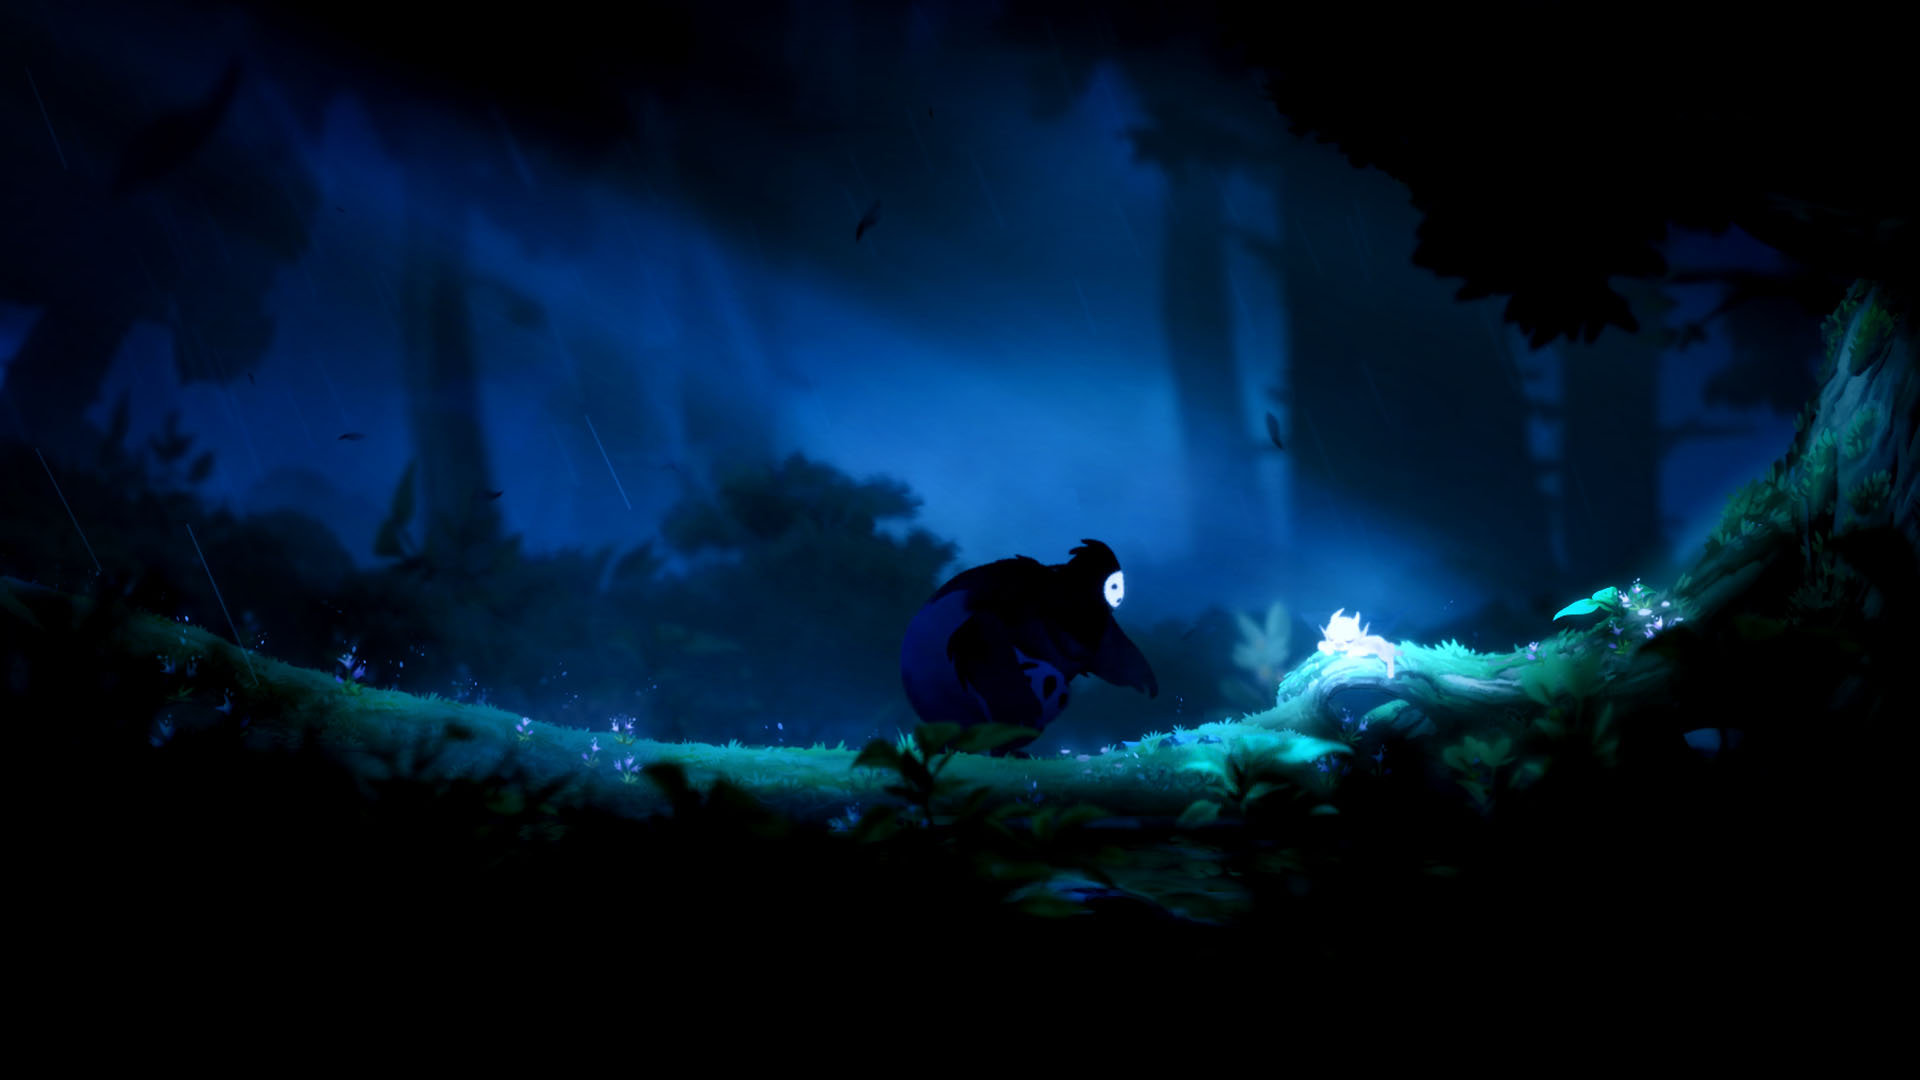 Best of 2015 - Ori and the Blind Forest